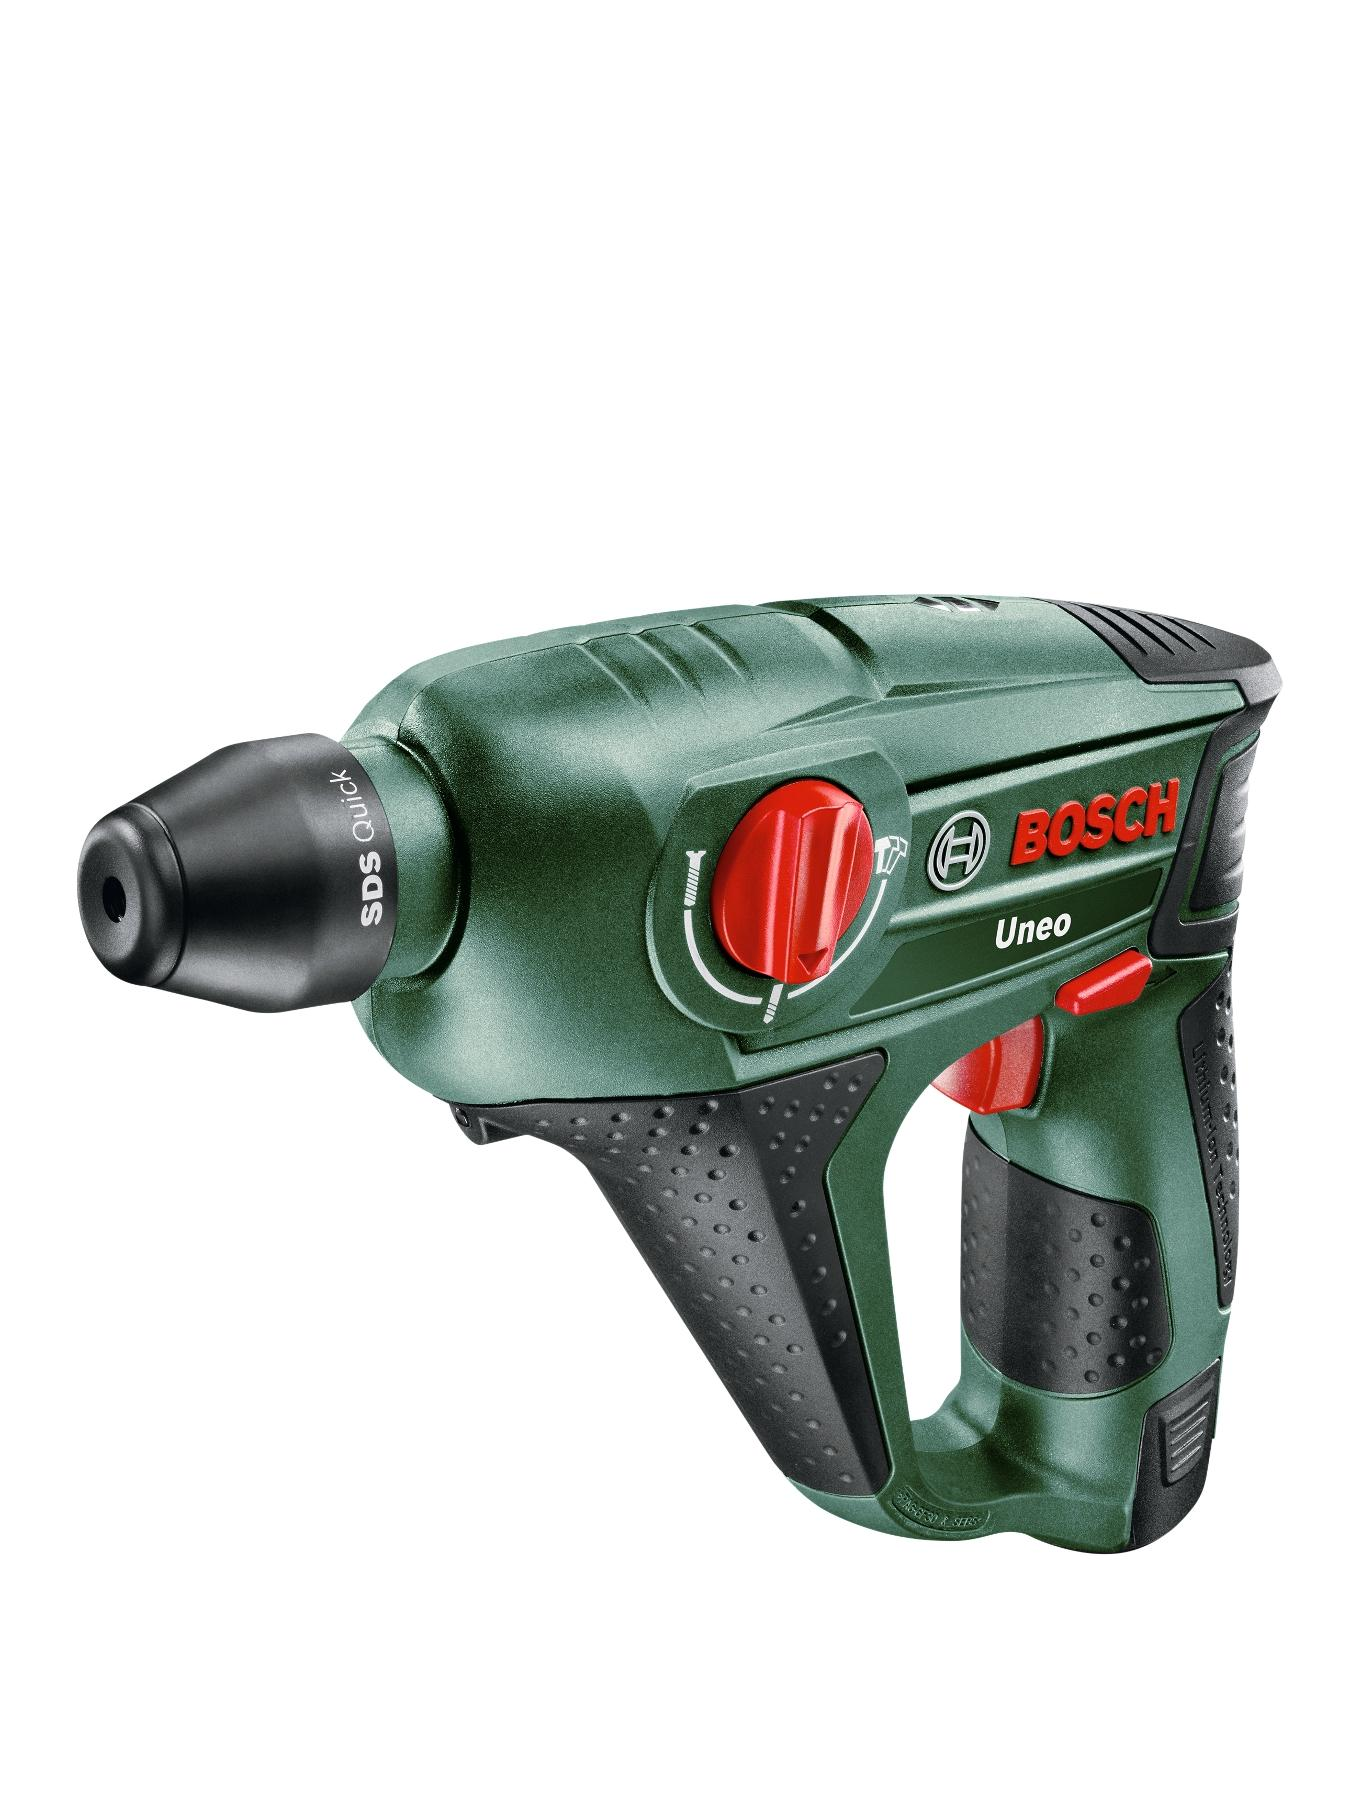 UNEO Cordless Hammer Drill